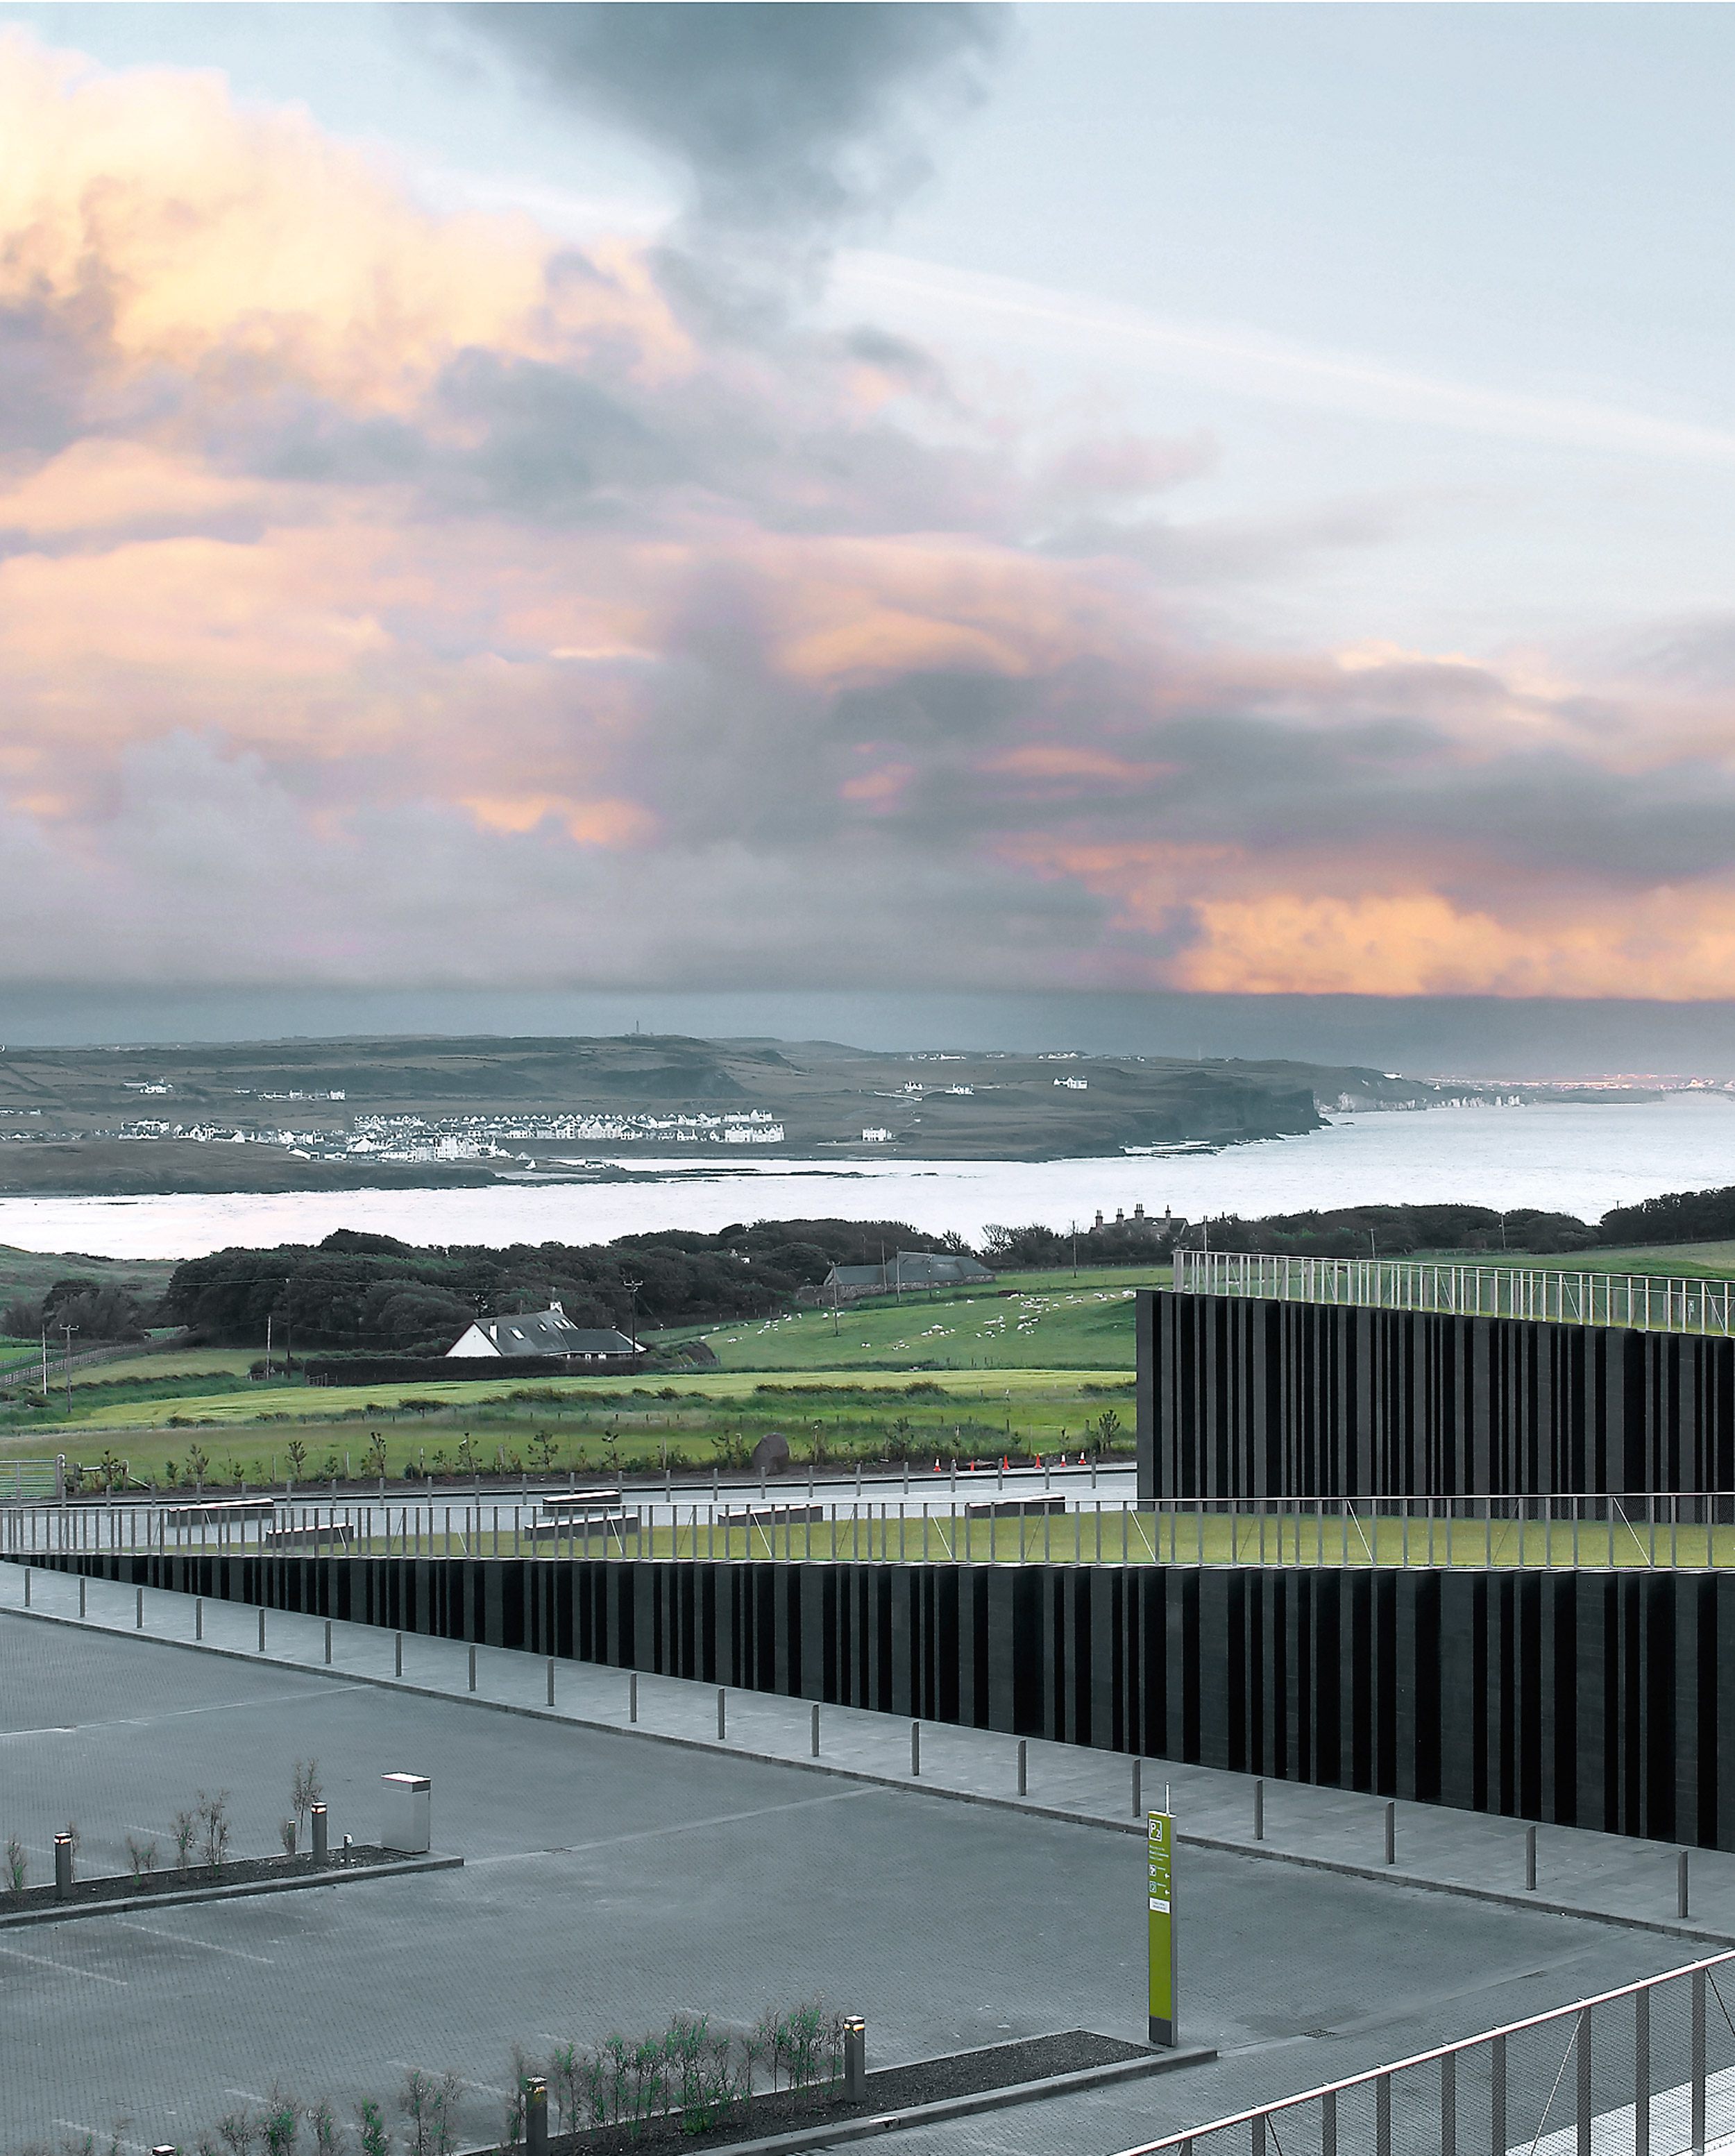 Giant's Causeway Visitor Center